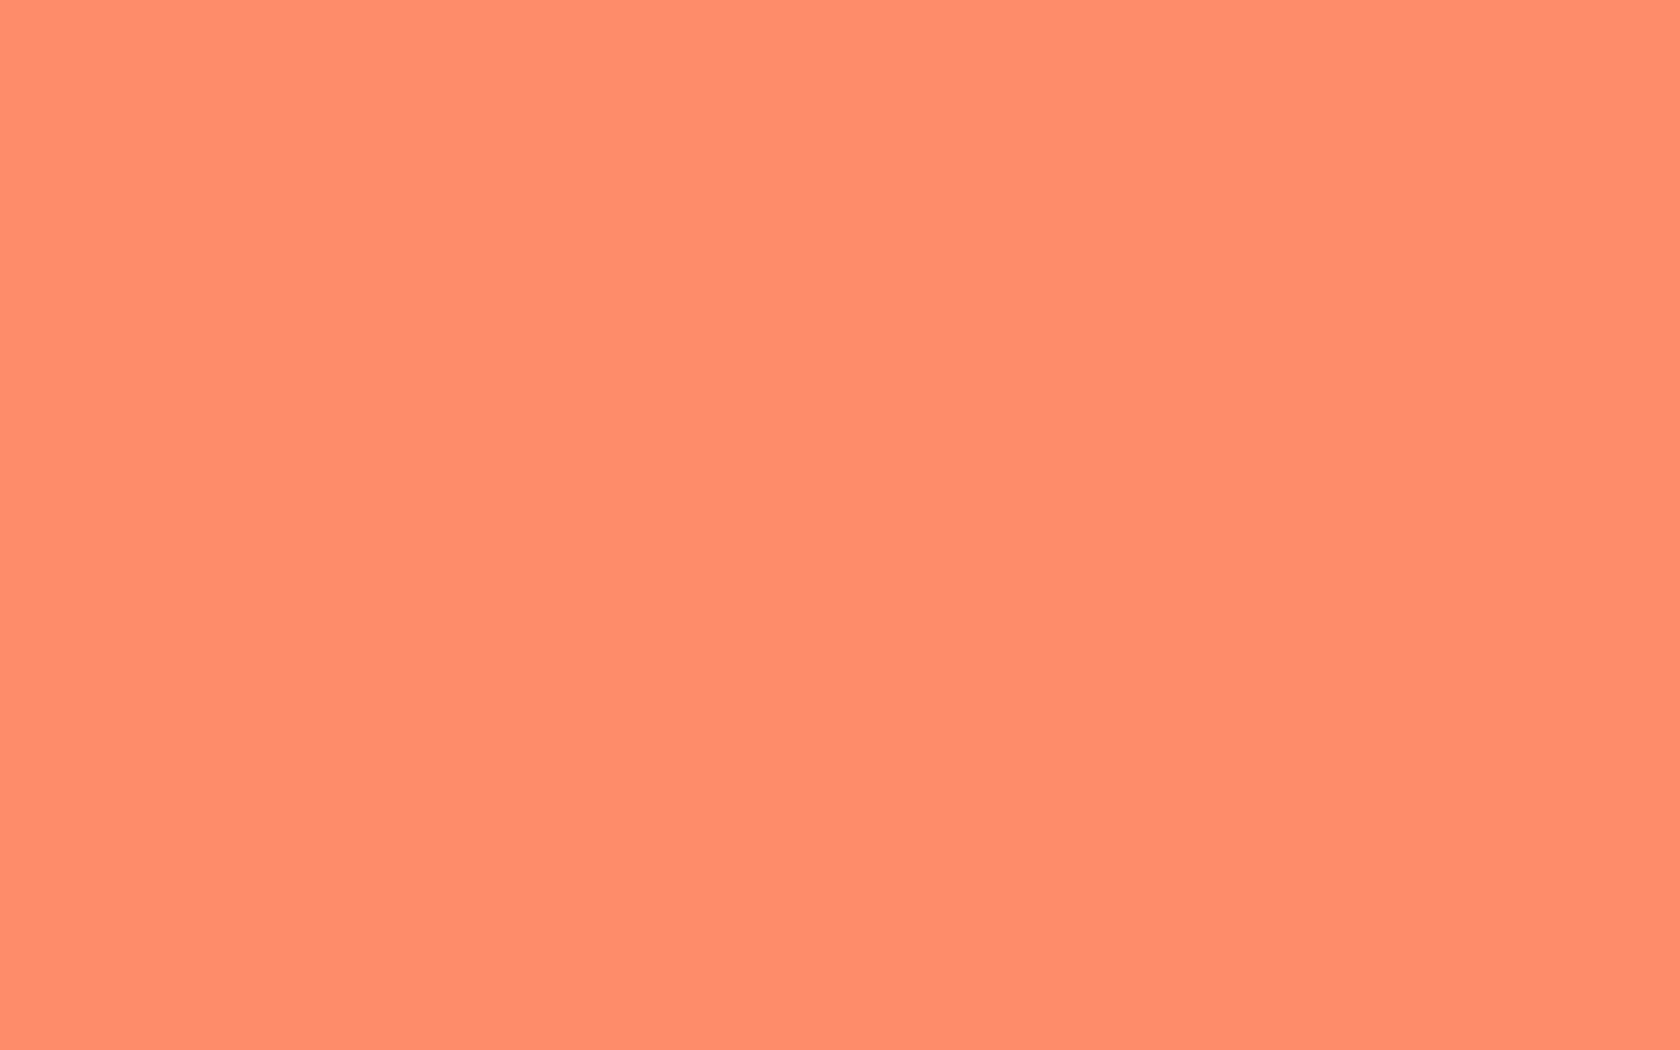 1680x1050 Salmon Solid Color Background